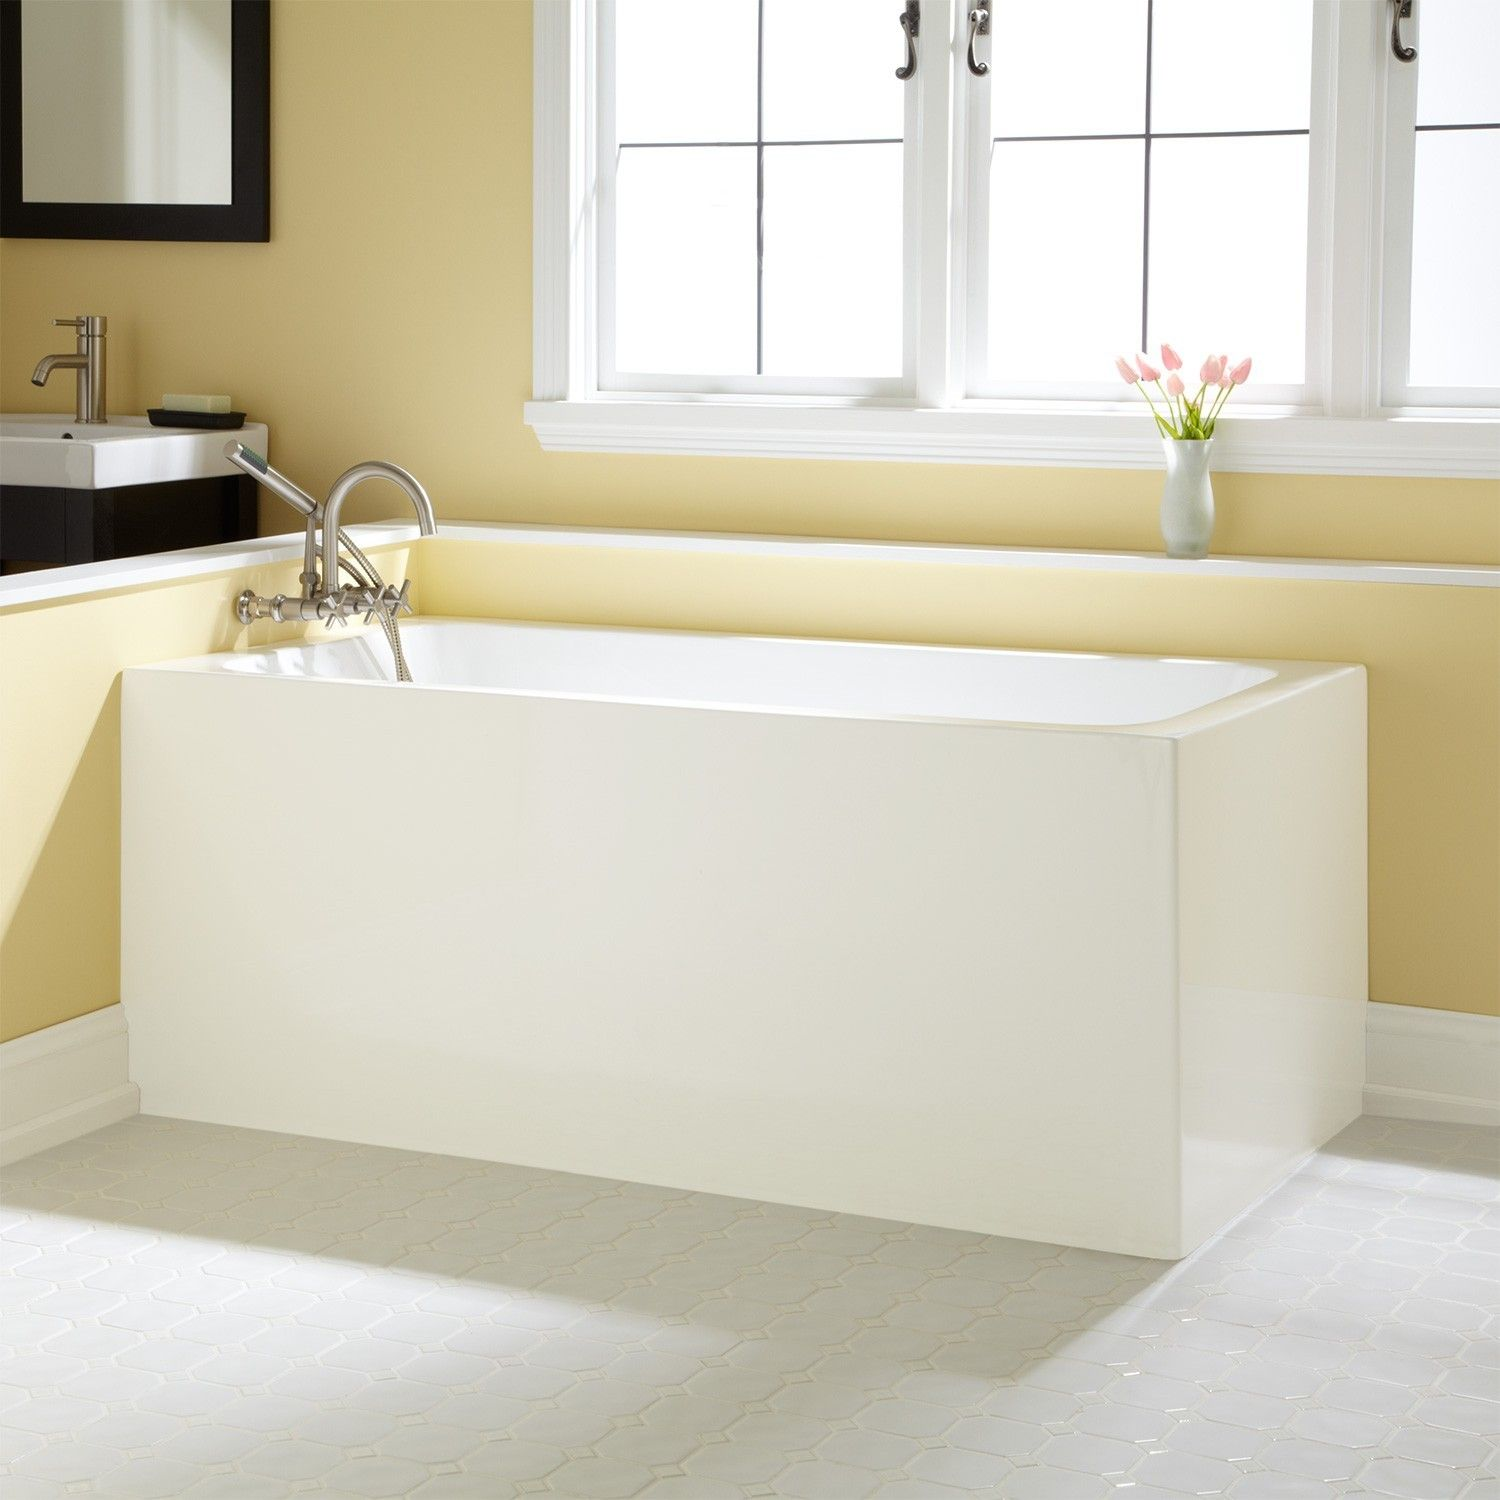 Handicap Tubs Rectangular White Acrylic Corner Tub And Small ...